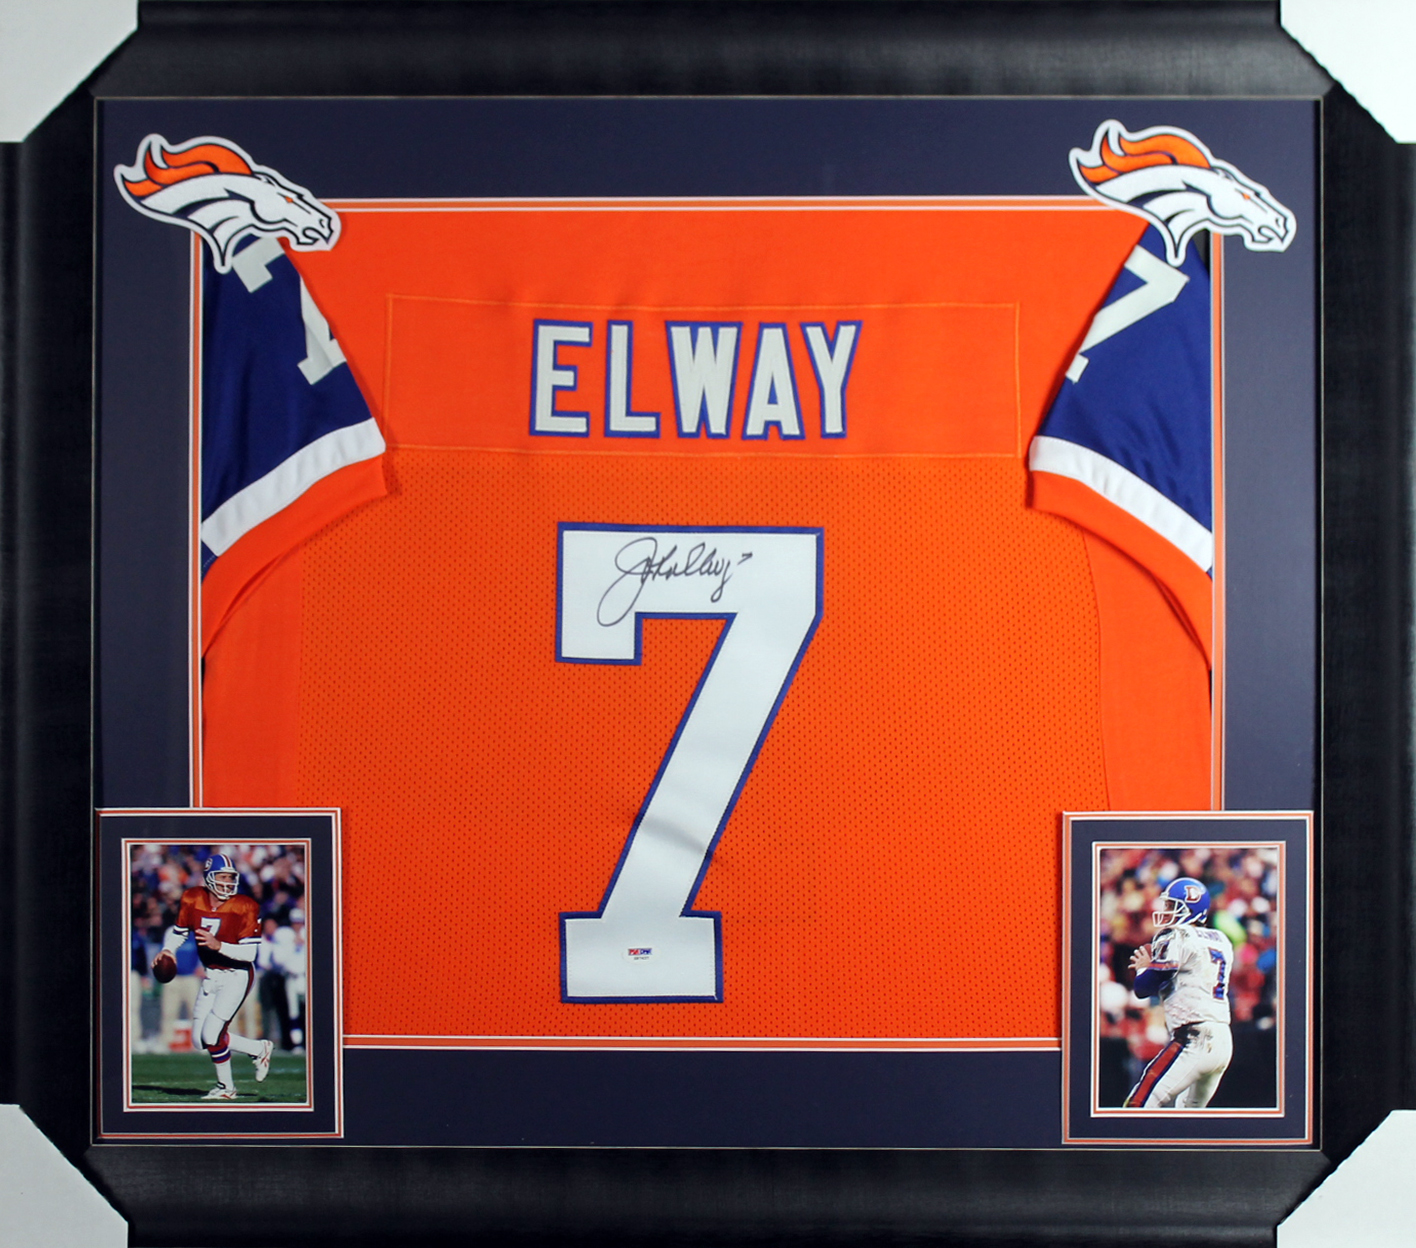 Details about Broncos John Elway Authentic Signed   Framed Orange Crush  Jersey PSA DNA f9b4d9c64